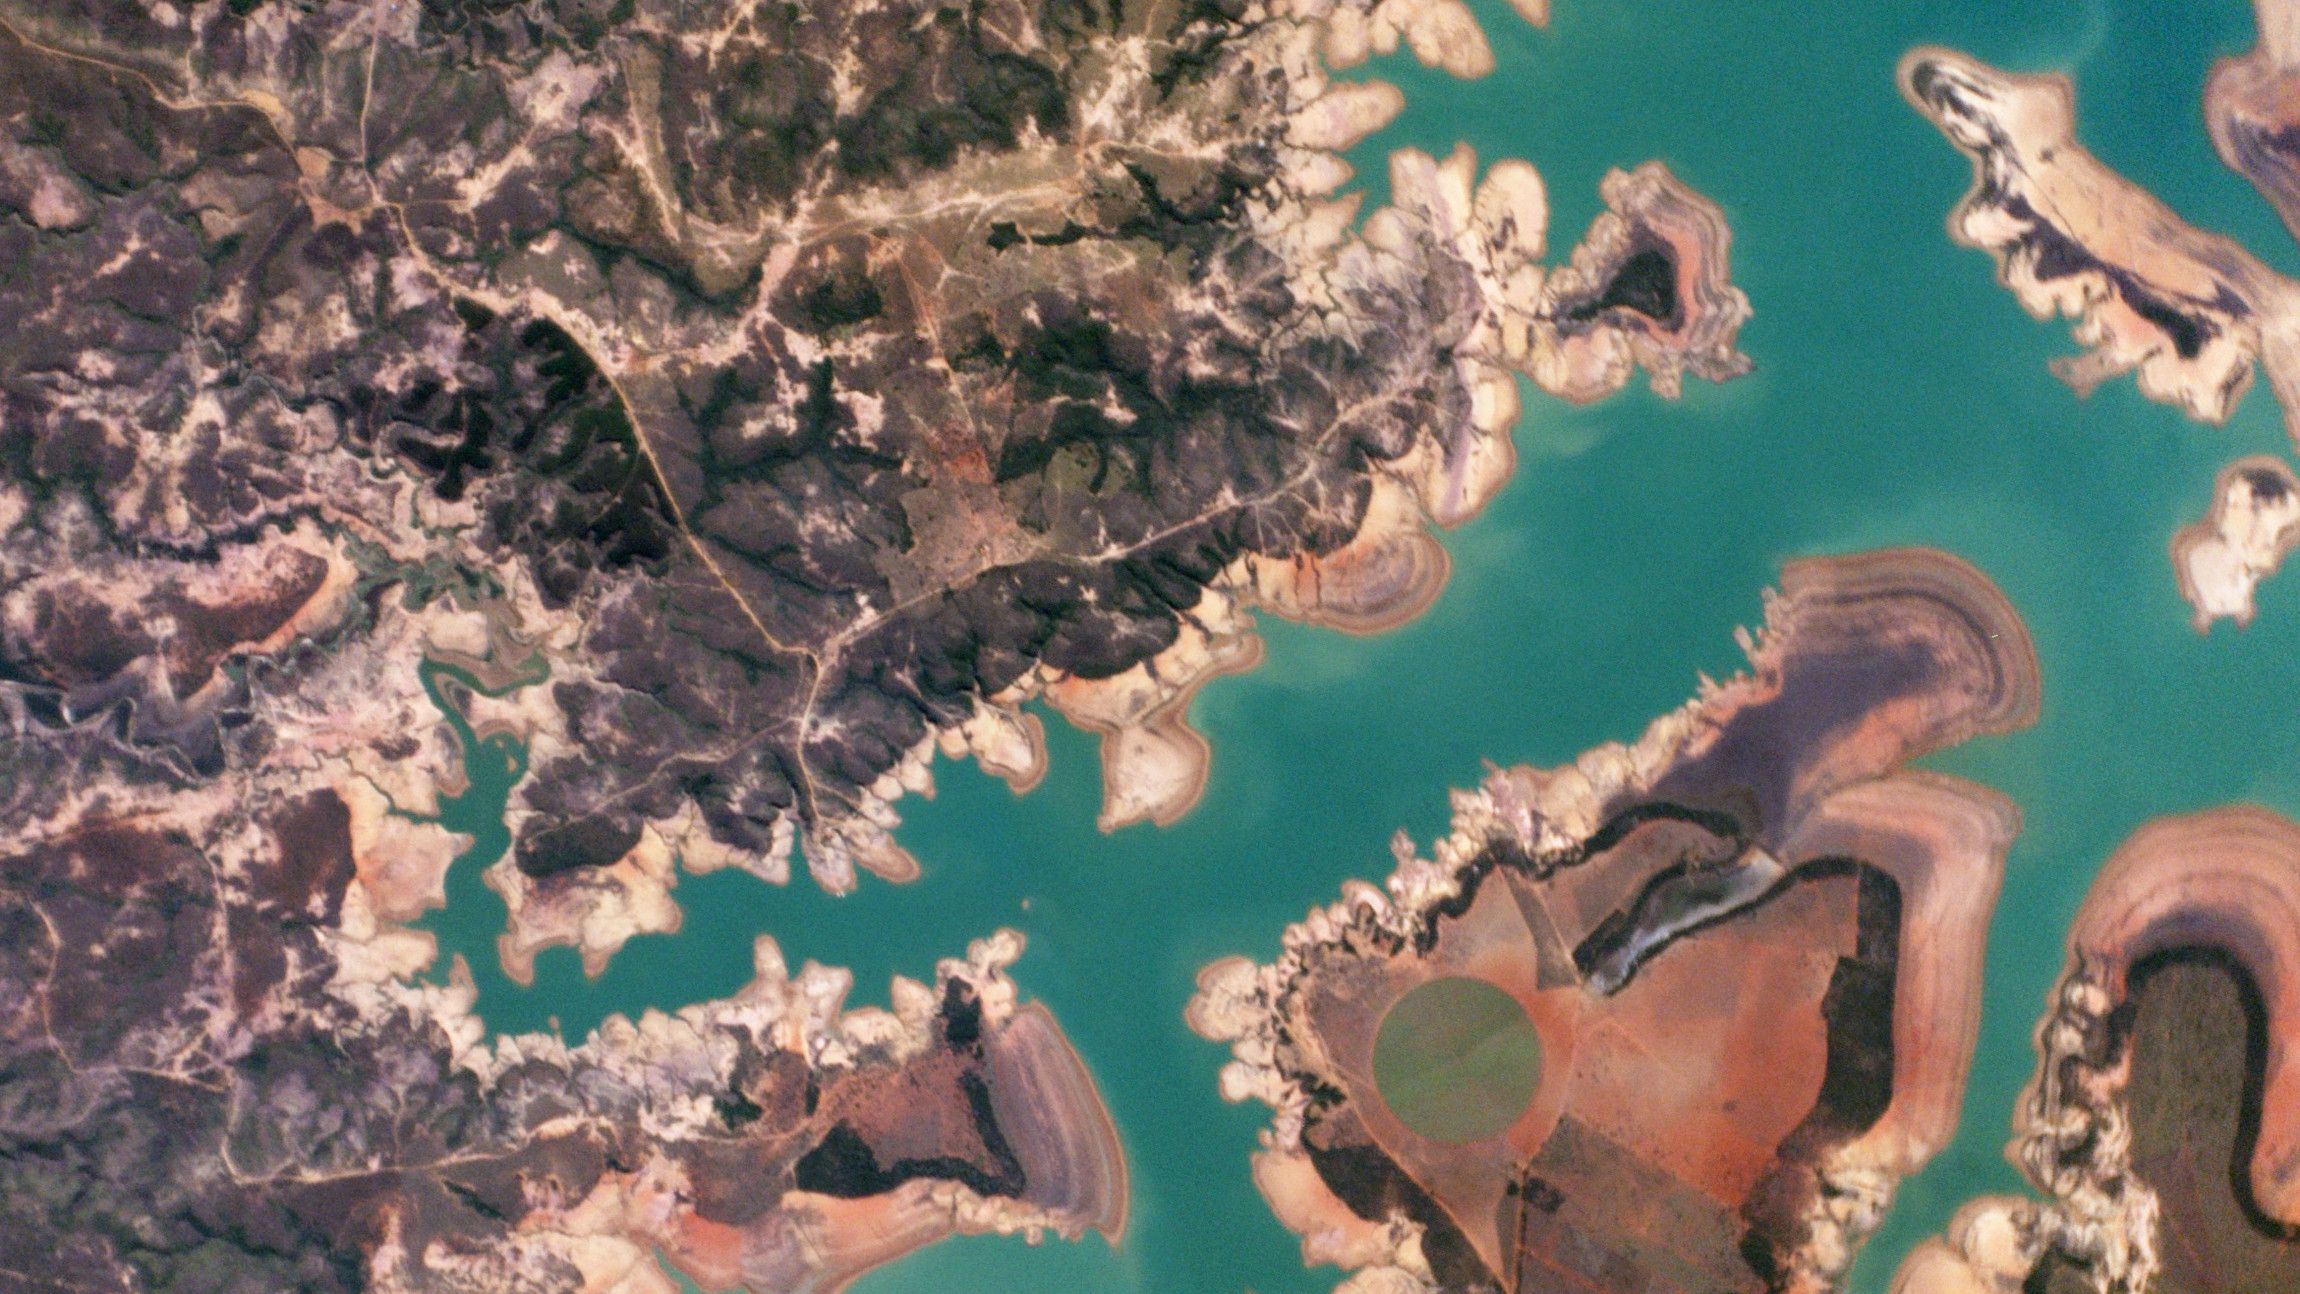 The Represa Três Marias, the result of damming the São Francisco river, is one of the largest reservoirs in Brazil. In 2014, Minas Gerais experienced one of the worst droughts of the last 50 years. The lower water level can be seen by using the compare tool.